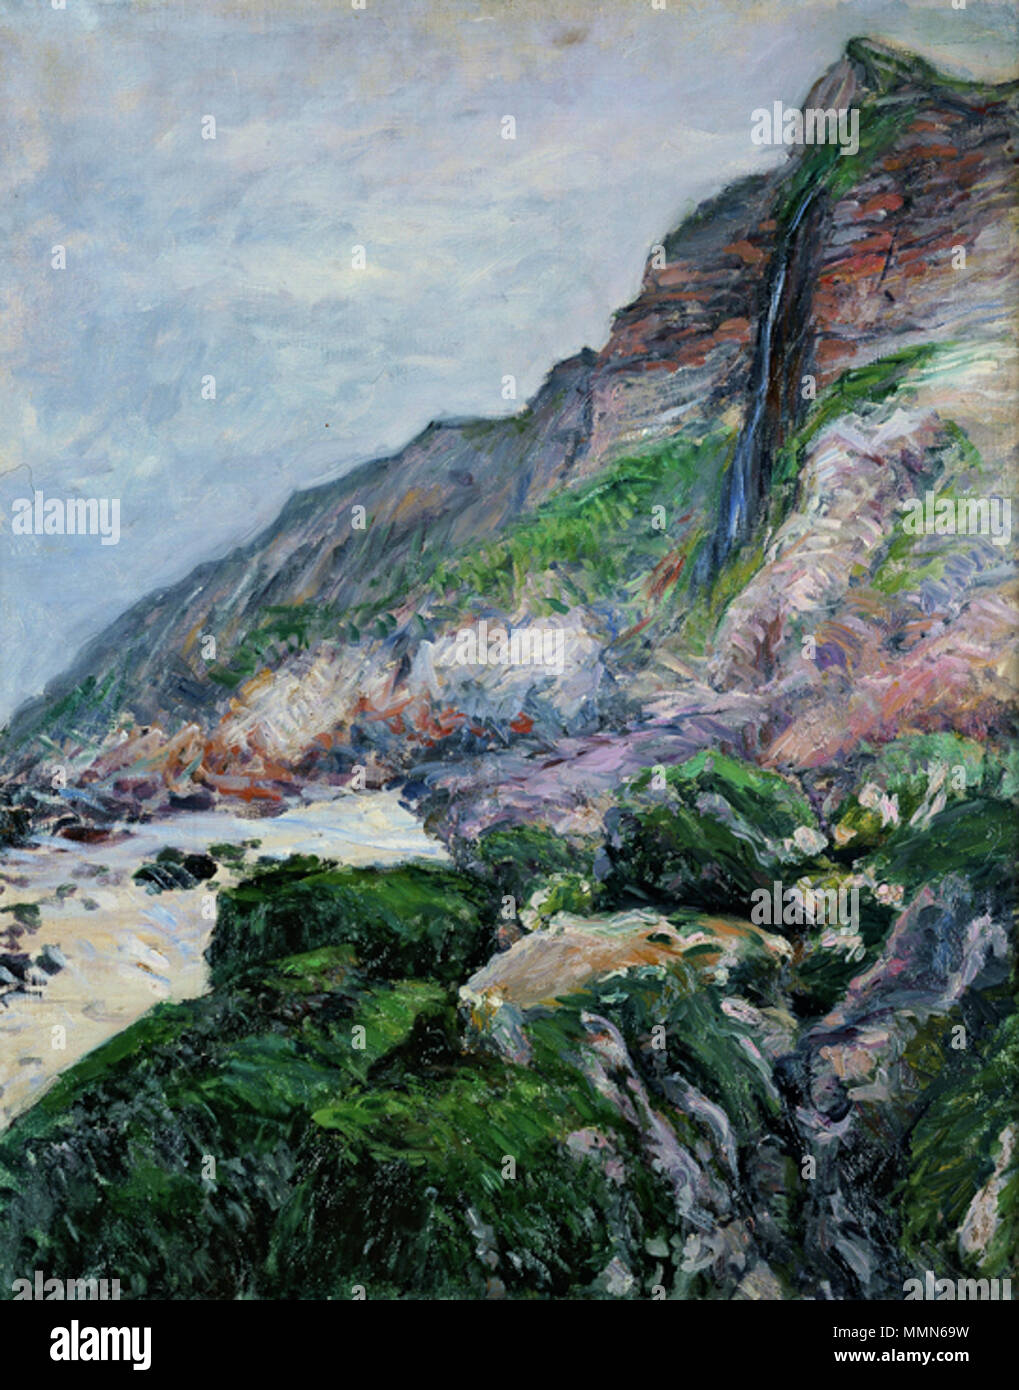 .  English: Painting by Gustave Caillebotte, (French impressionist, 1848–1894) entitled Cliffs in Normandy, 1880. Oil on canvas, 28 3/4 x 23 5/8 in. (73 x 60 cm). Private collection  . 22 February 2013, 11:06:06. 99 Brooklyn Caillebotte cliffs-in-normandy - Stock Image